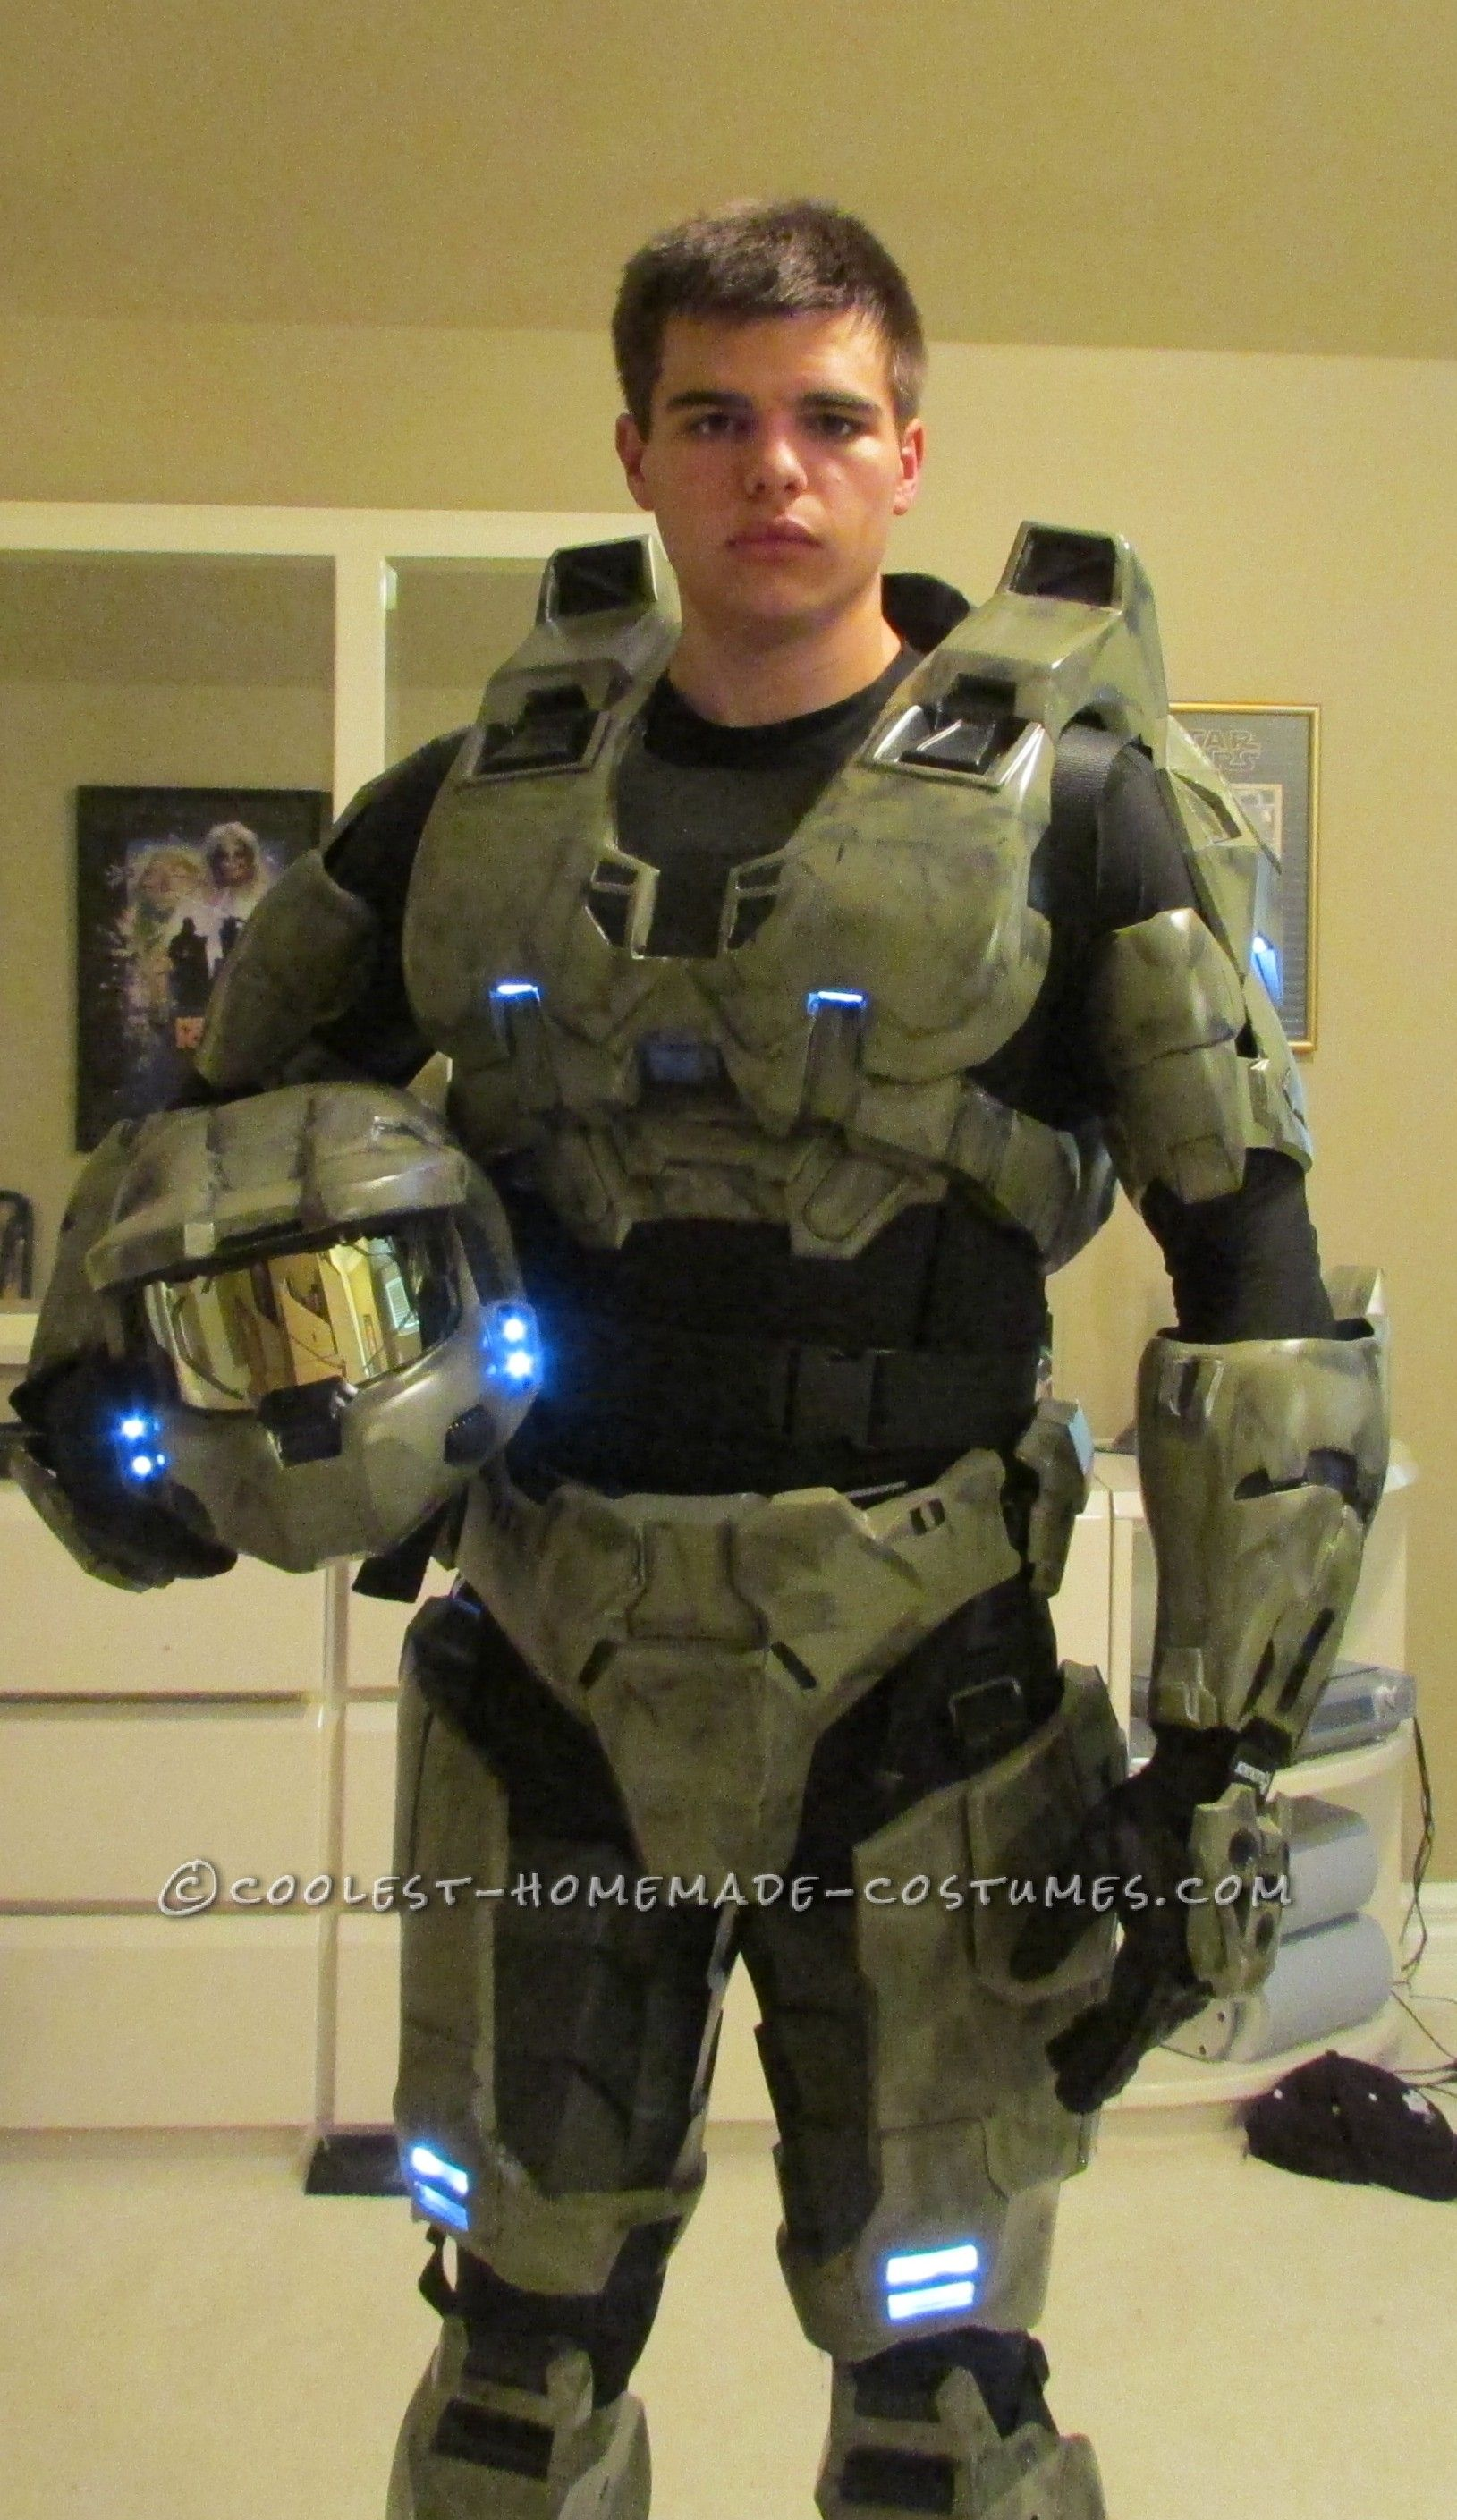 Master Chief Without Armor : master, chief, without, armor, Costume, Dream, Reality:, Master, Chief!, Cosplay,, Chief, Costume,, Armor